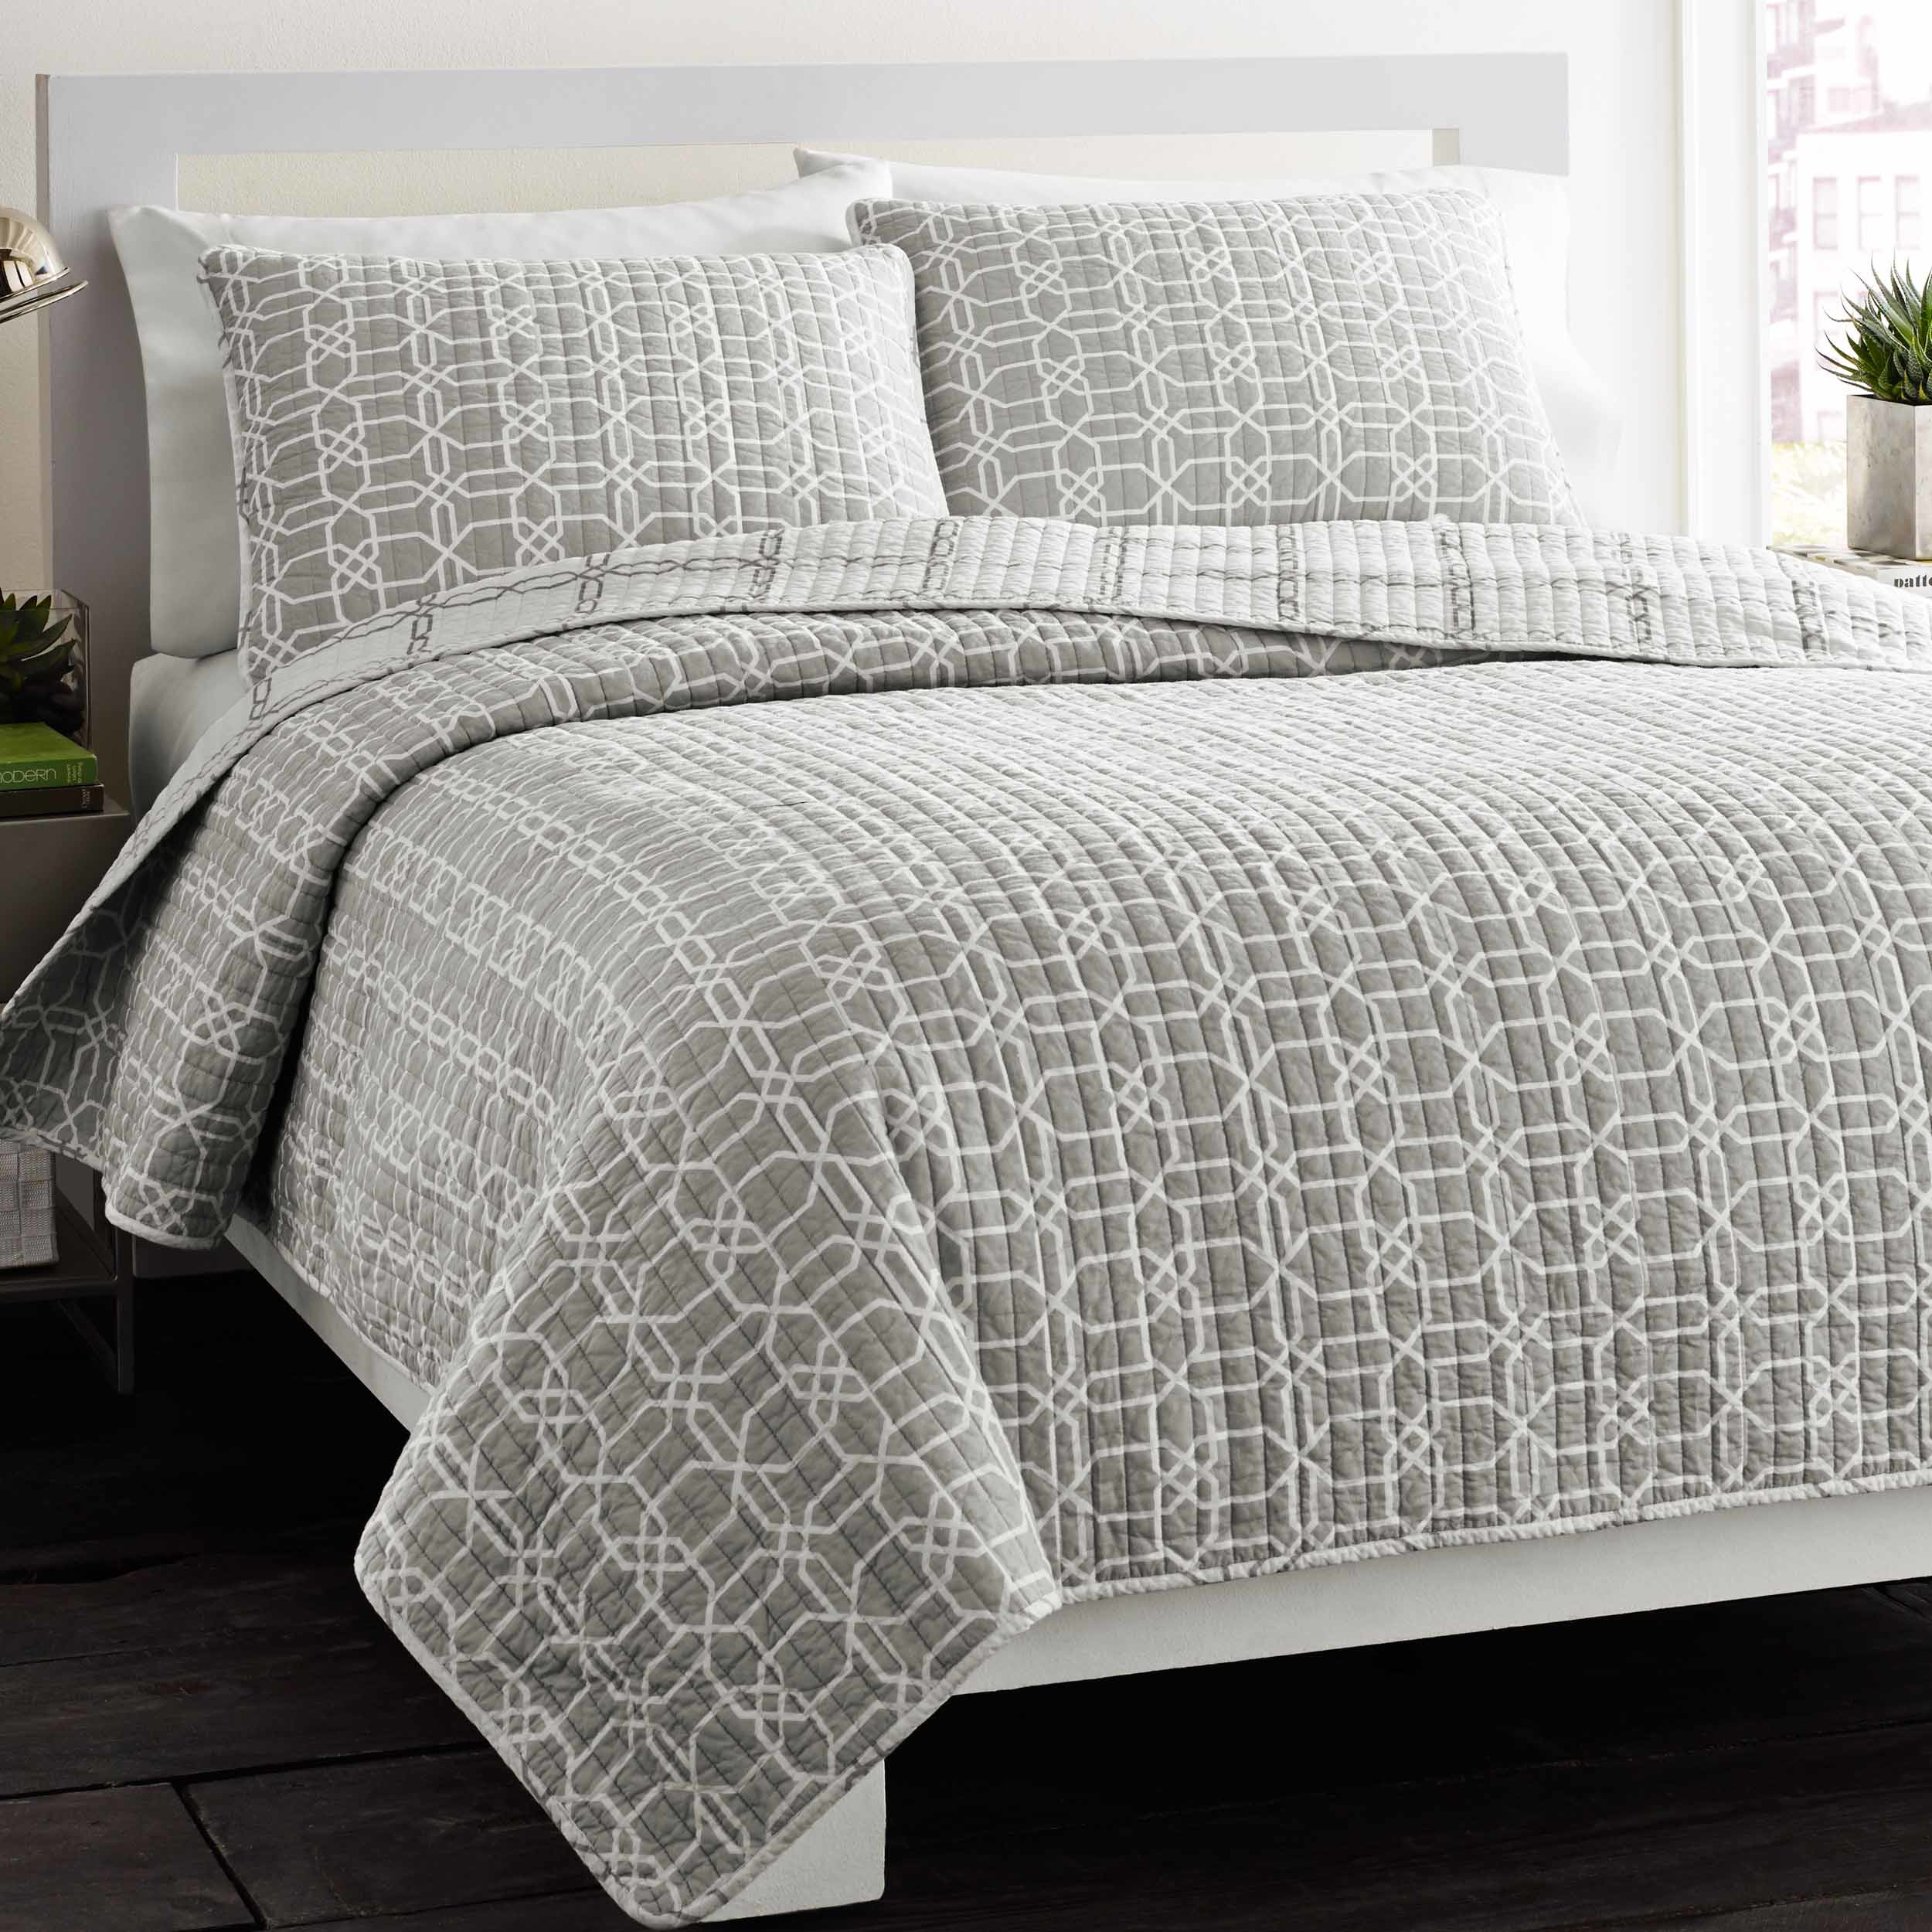 Cheap Bed Comforters | Sears Comforter Sets | Comforter Sets Sears